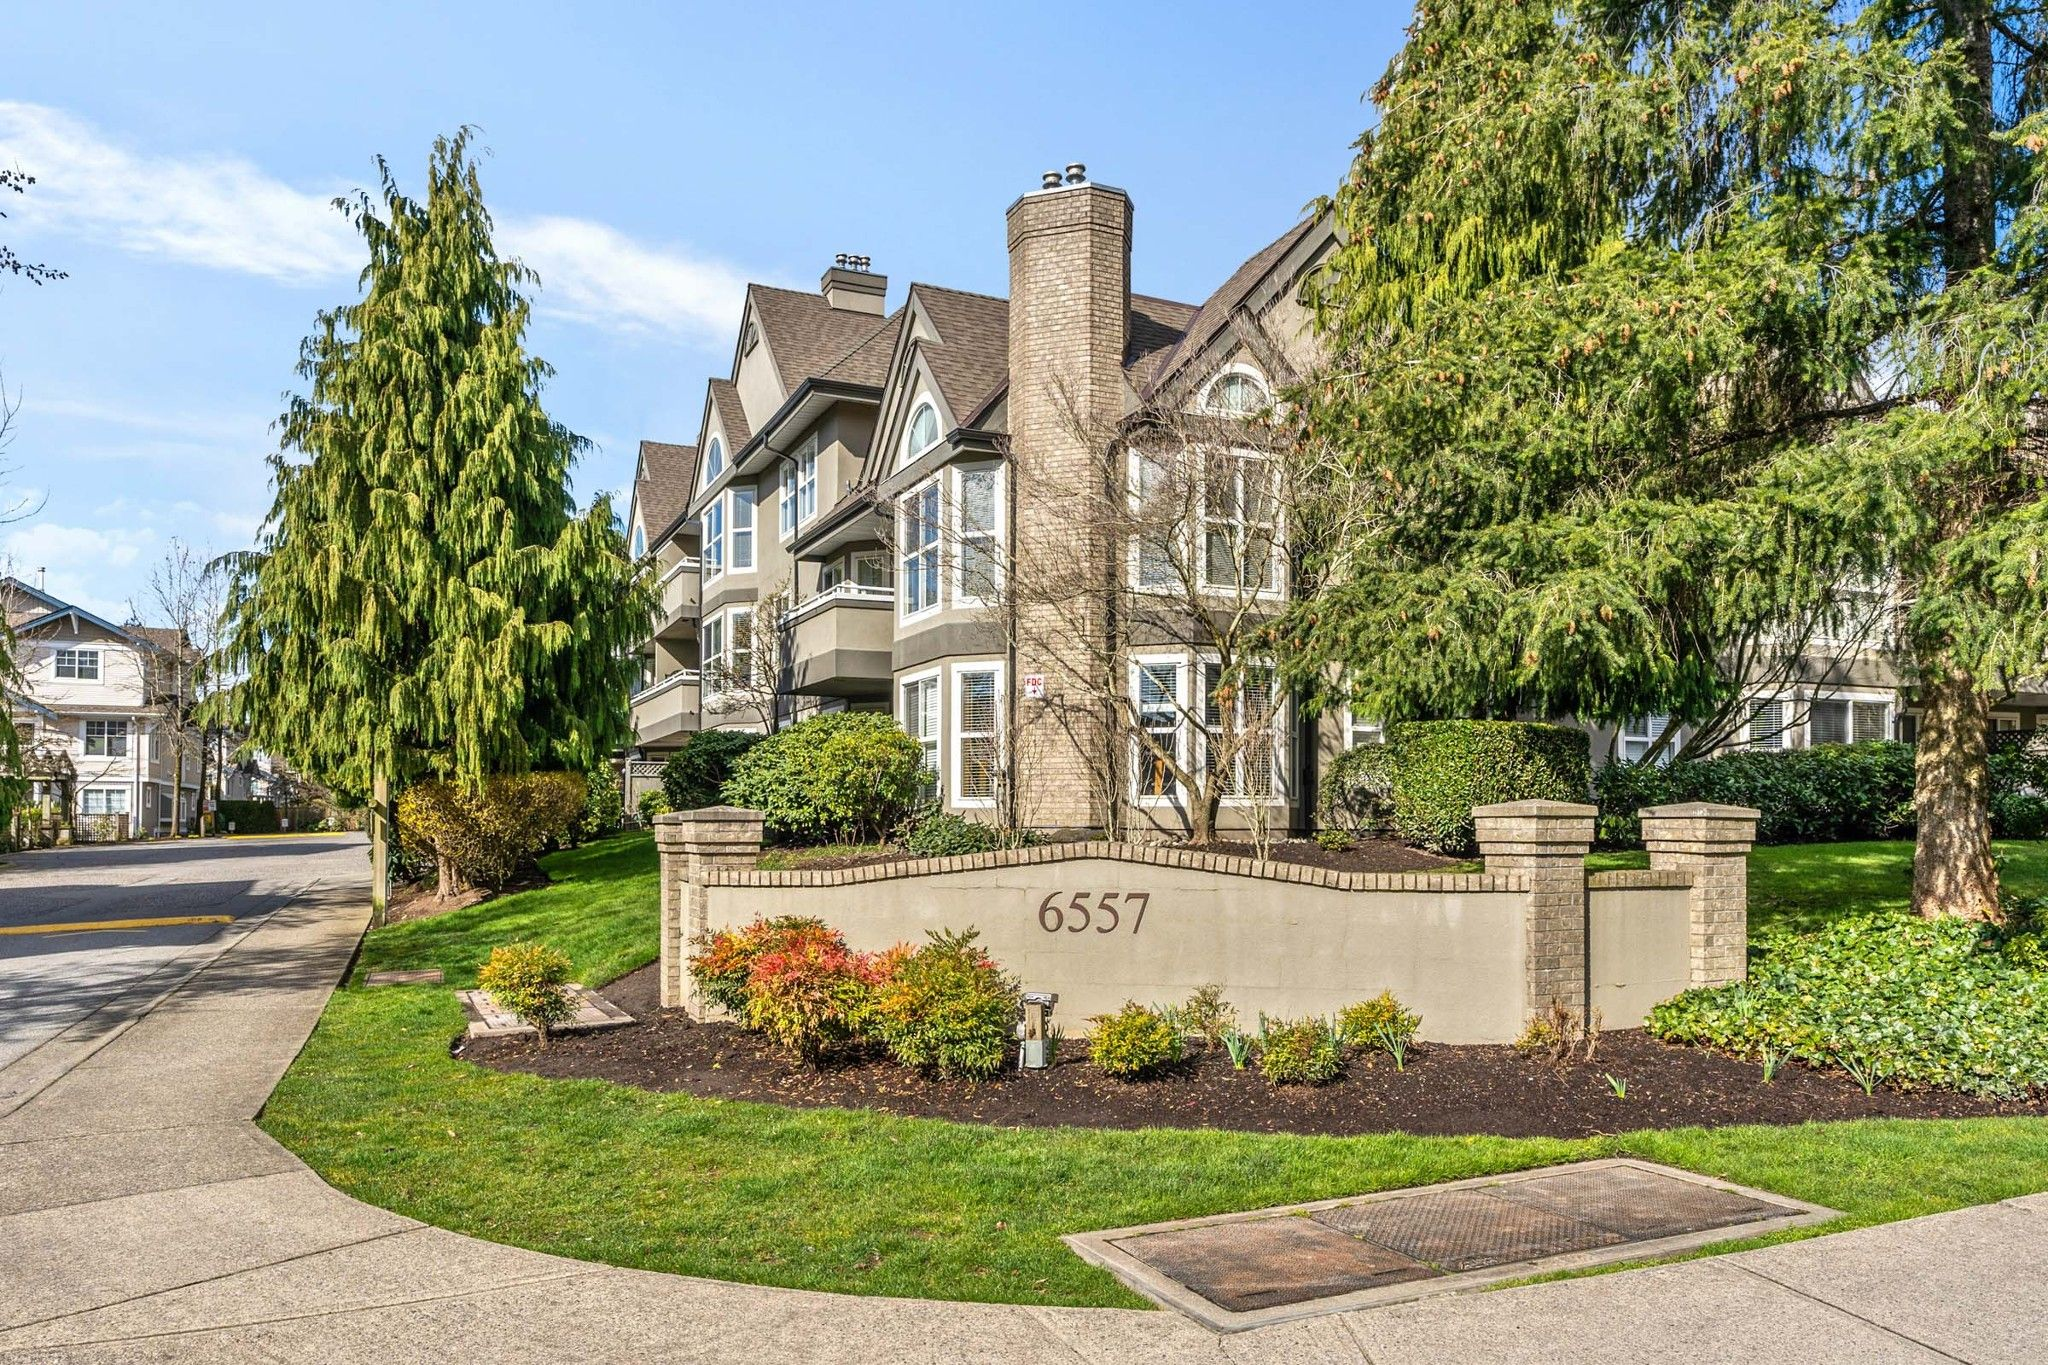 """Main Photo: 101 6557 121 Street in Surrey: West Newton Condo for sale in """"Lakewood Terrace"""" : MLS®# R2554164"""